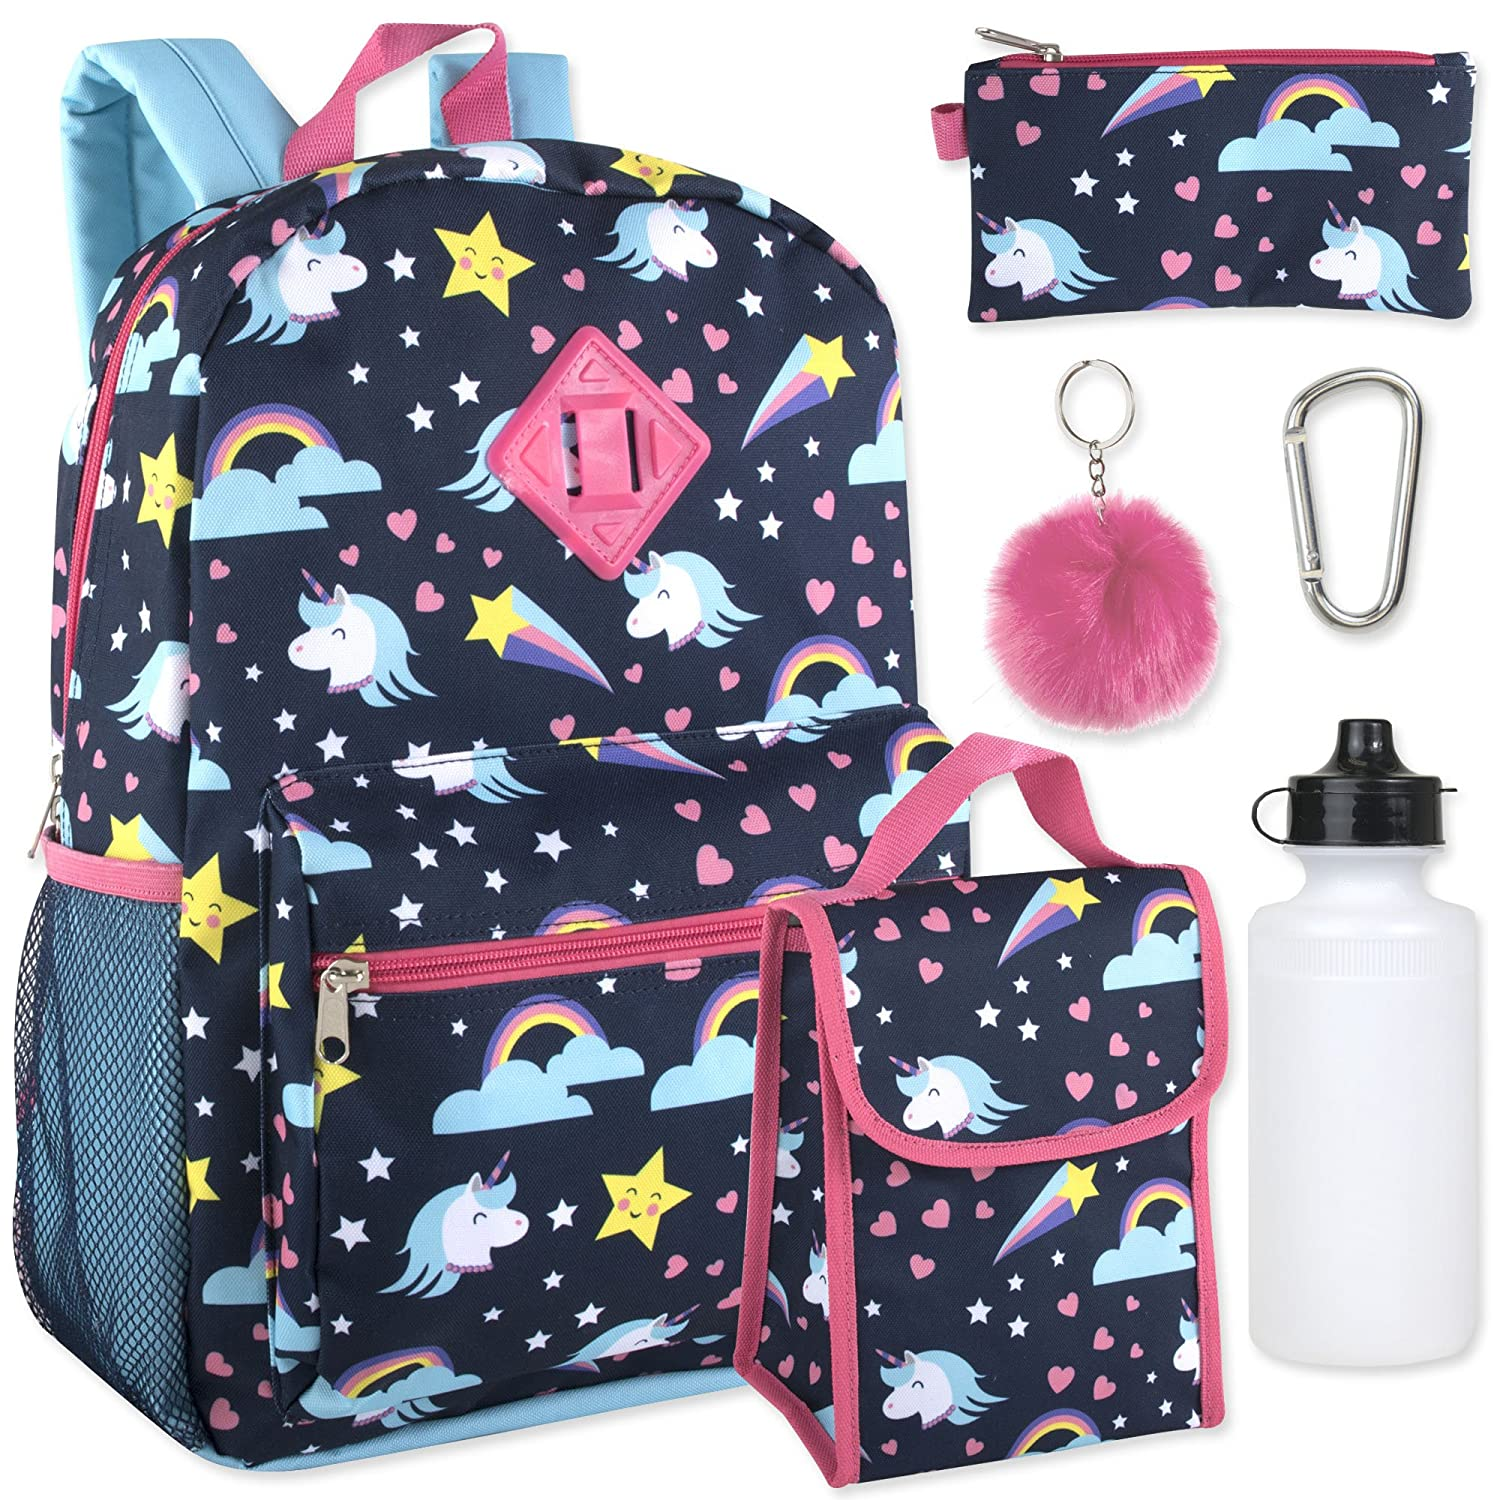 abff412da428 Girl's 6 in 1 Backpack Set Including A Backpack, Lunch Bag, Pencil  Case,Water Bottle, Pom Pom Keychain, And Clip (Unicorn)